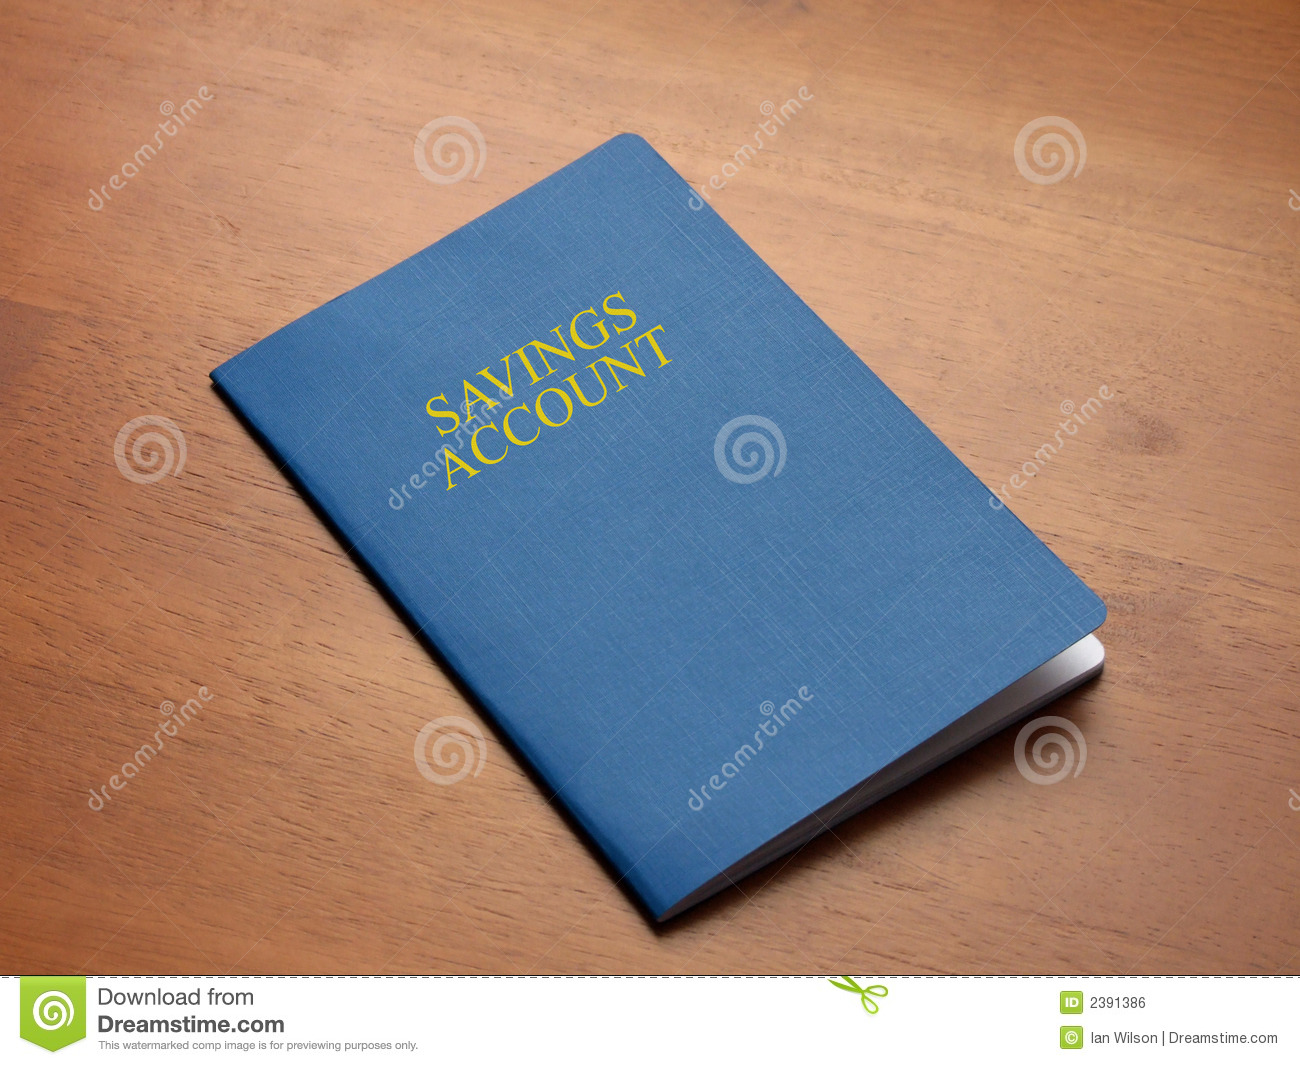 Savings Account Book Royalty Free Stock Image.